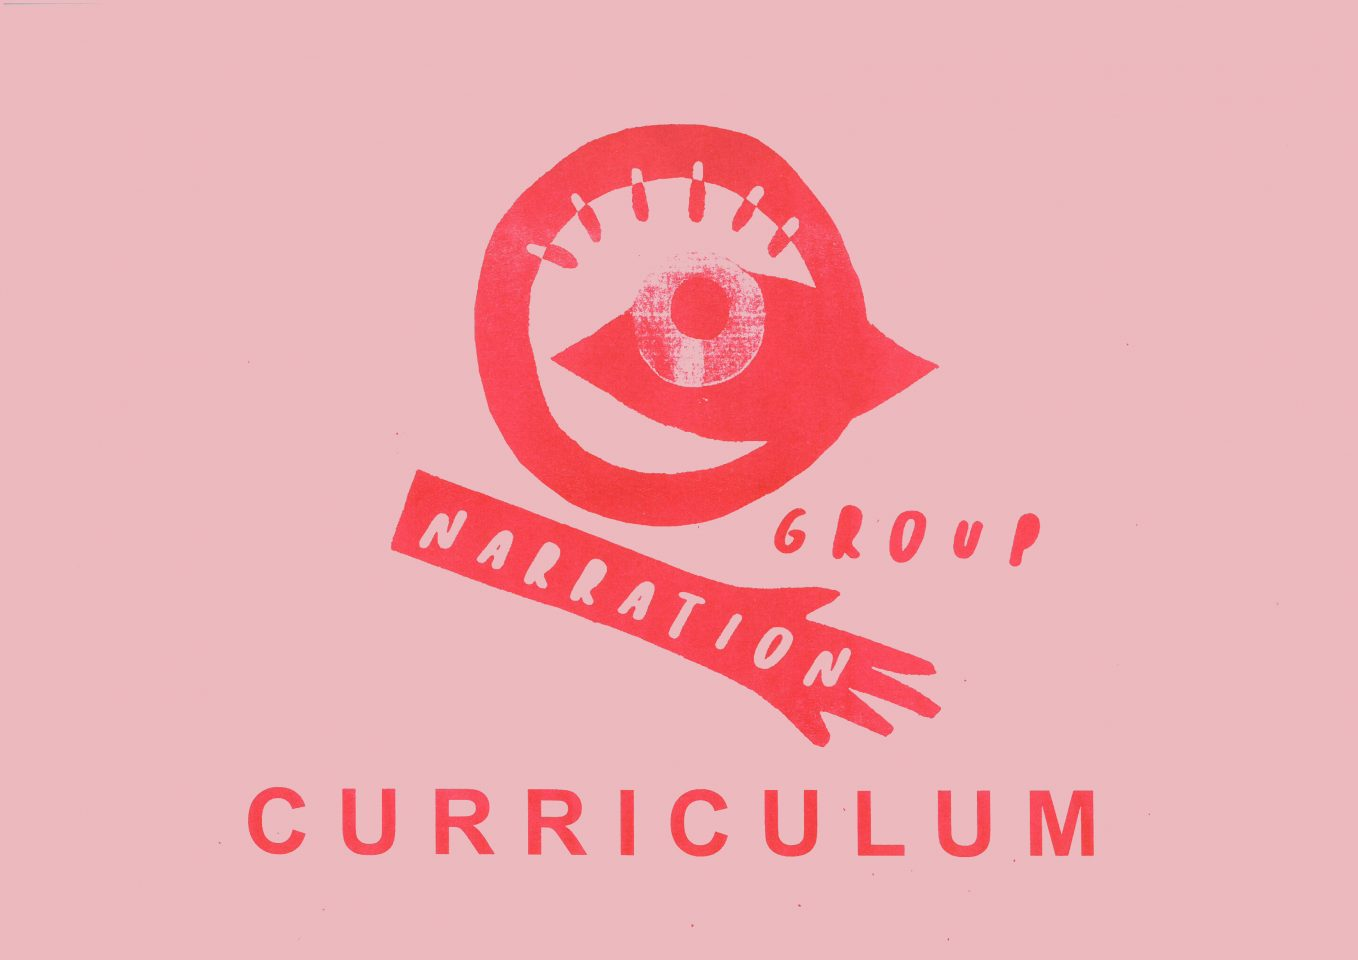 Narration Group: Curriculum